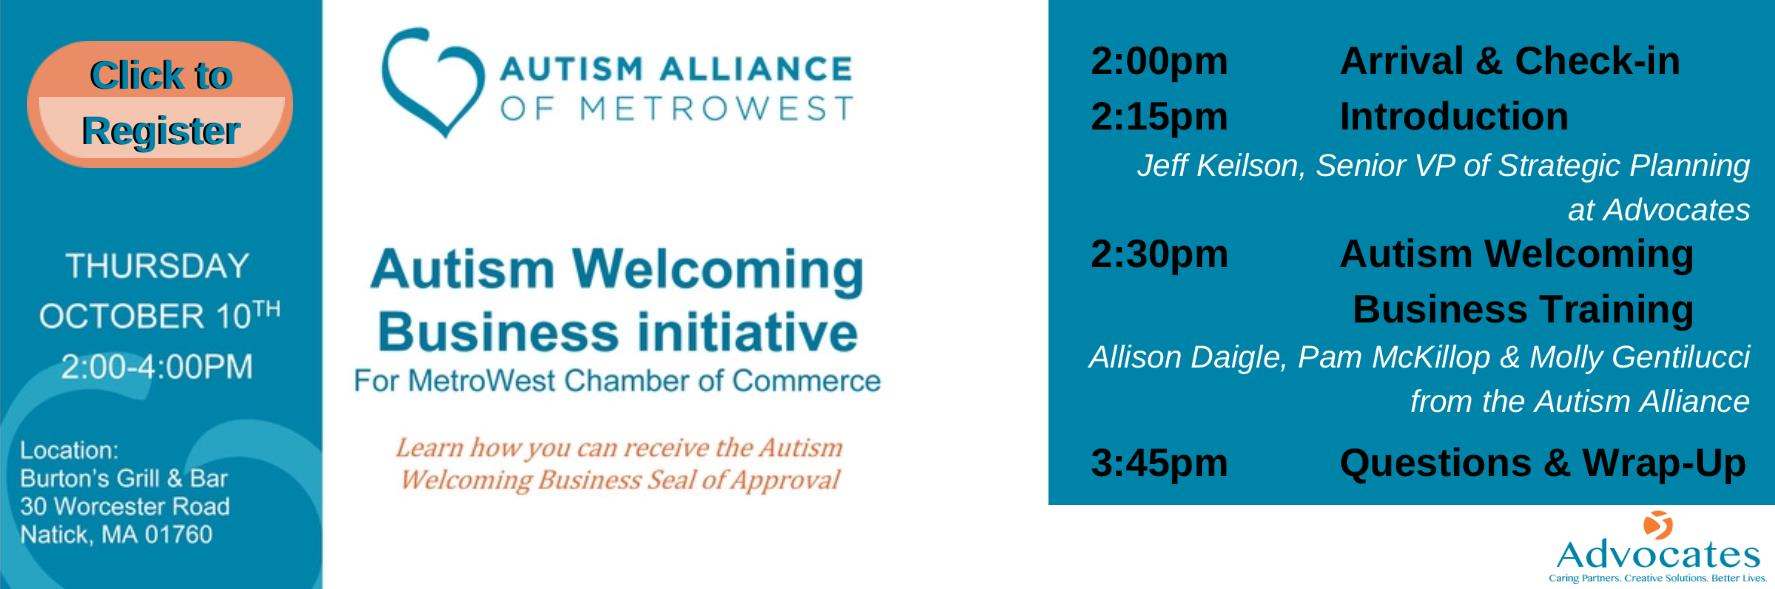 Autism-Welcome-Banner.jpeg